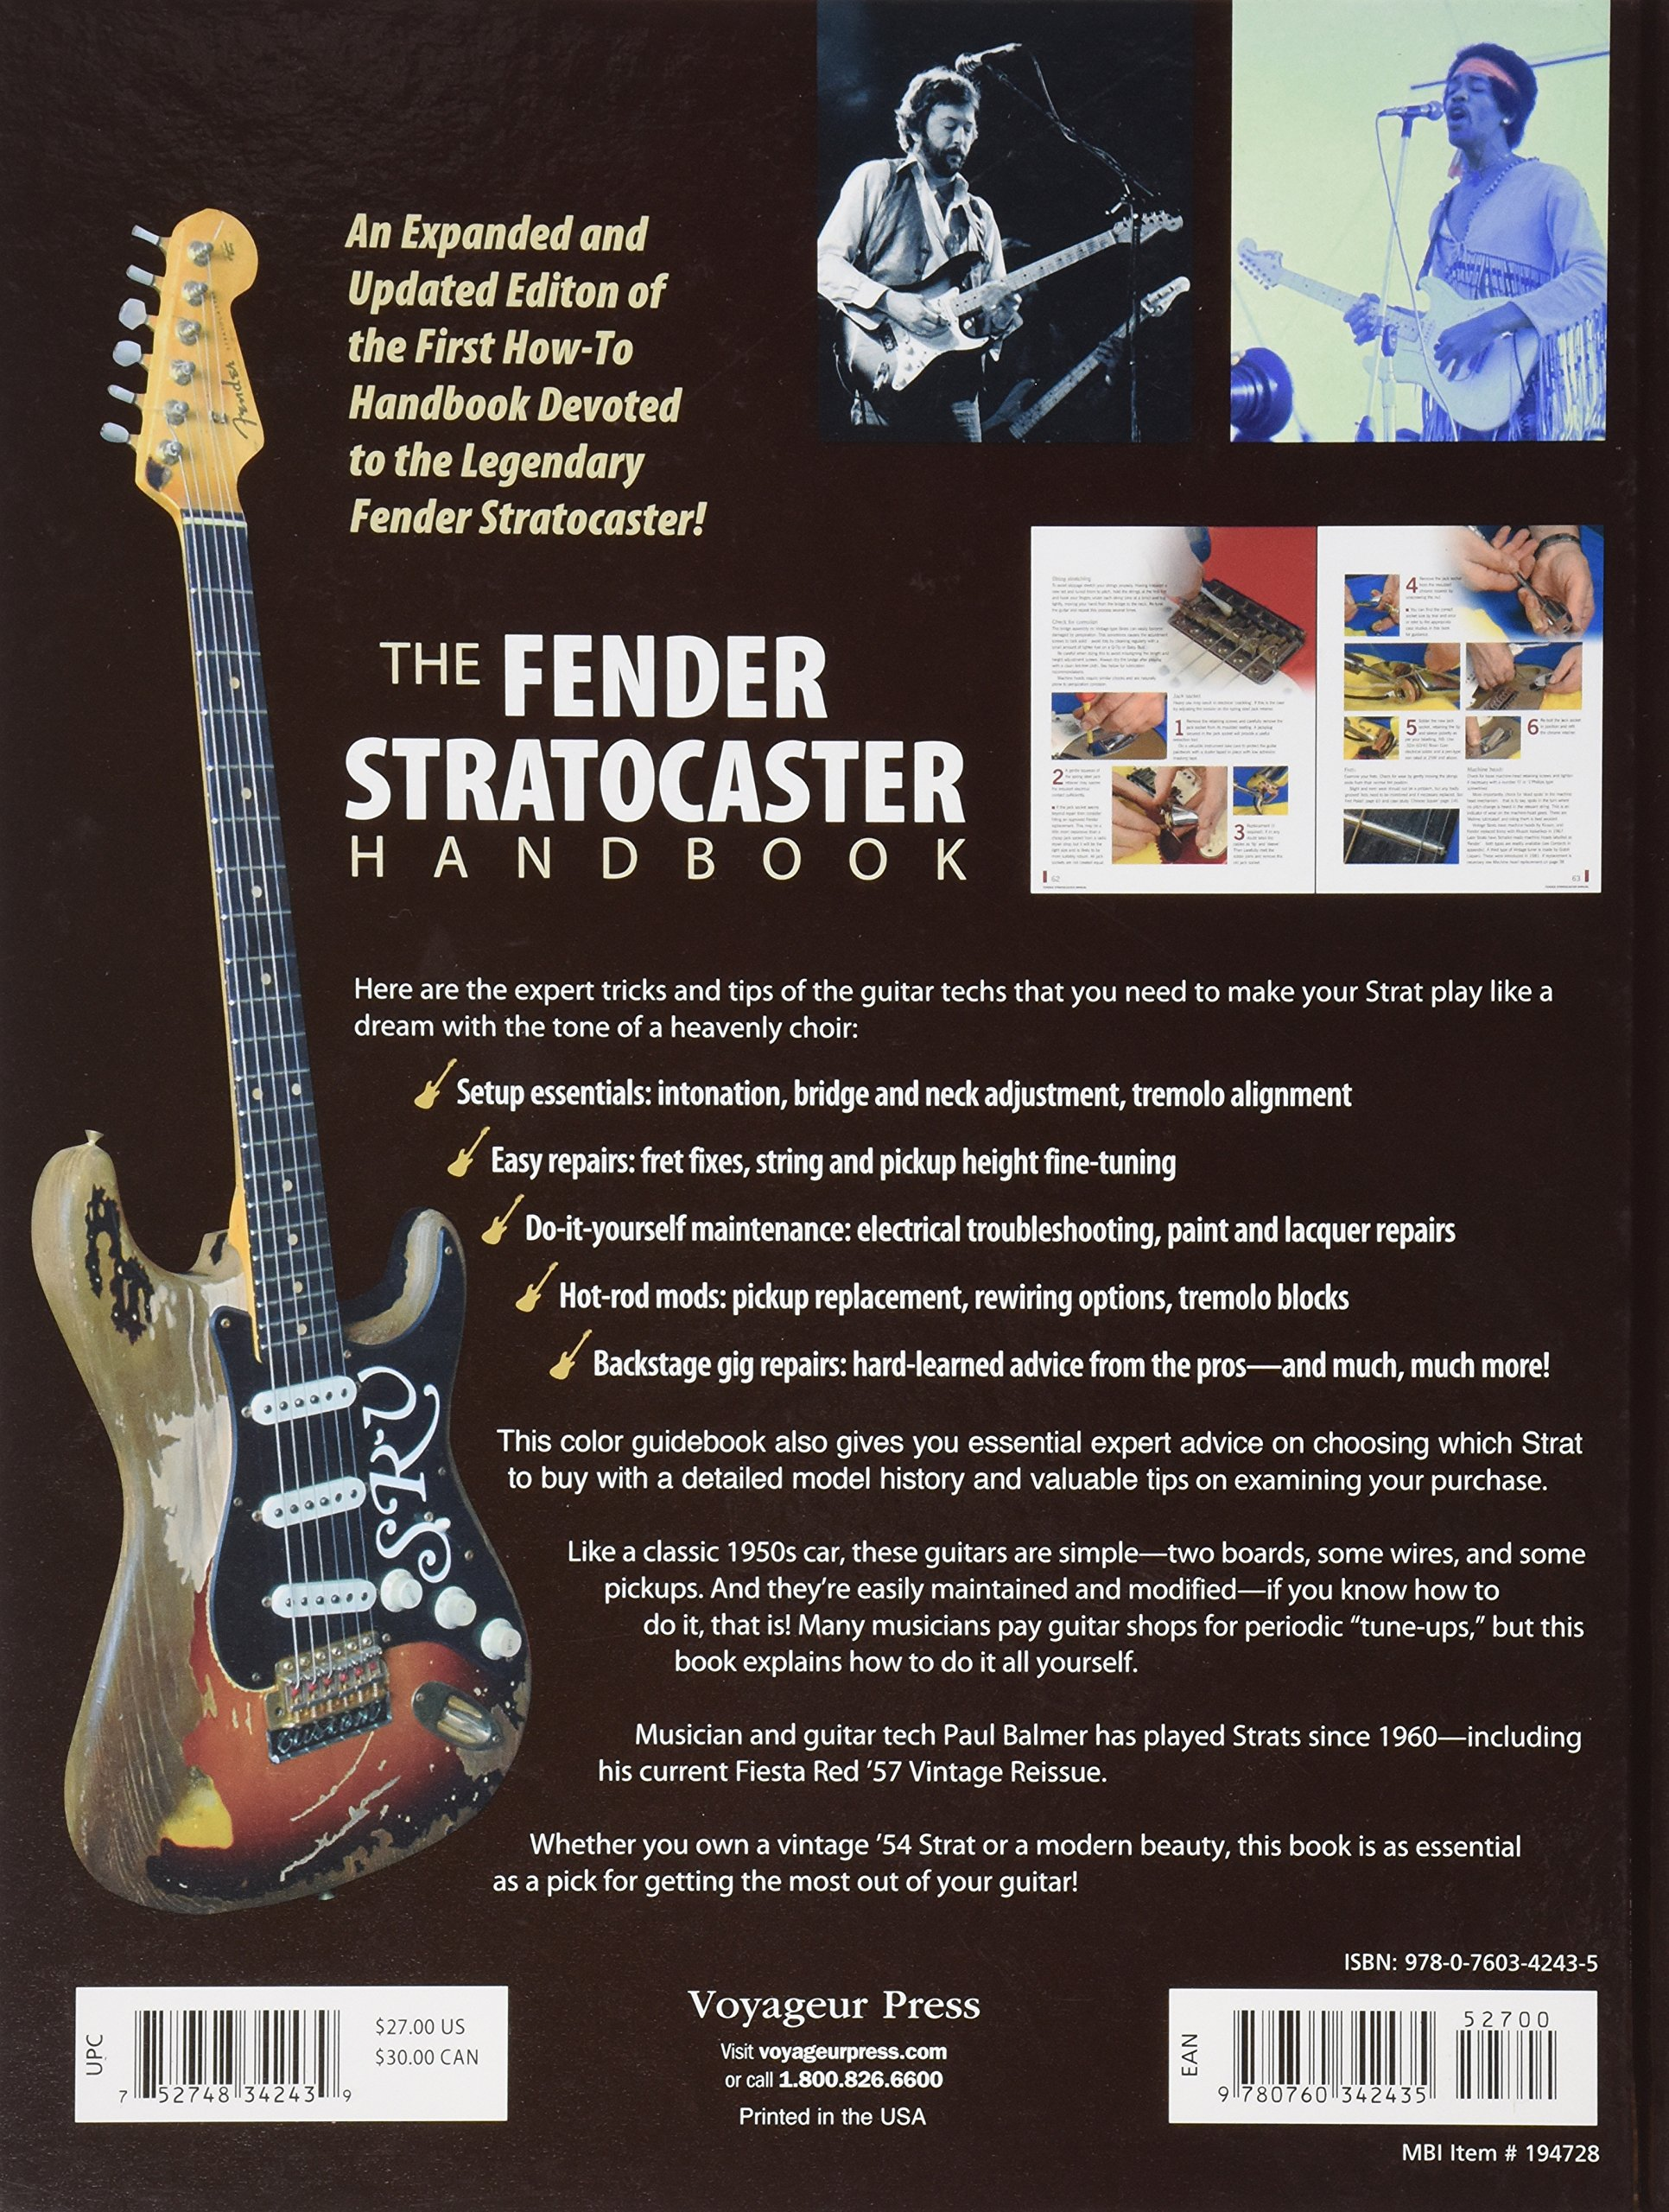 The Fender Stratocaster Handbook, 2nd Edition: How to Buy, Maintain, Set Up, Troubleshoot, and Modify Your Strat: Amazon.es: Paul Balmer, Hank Marvin: ...